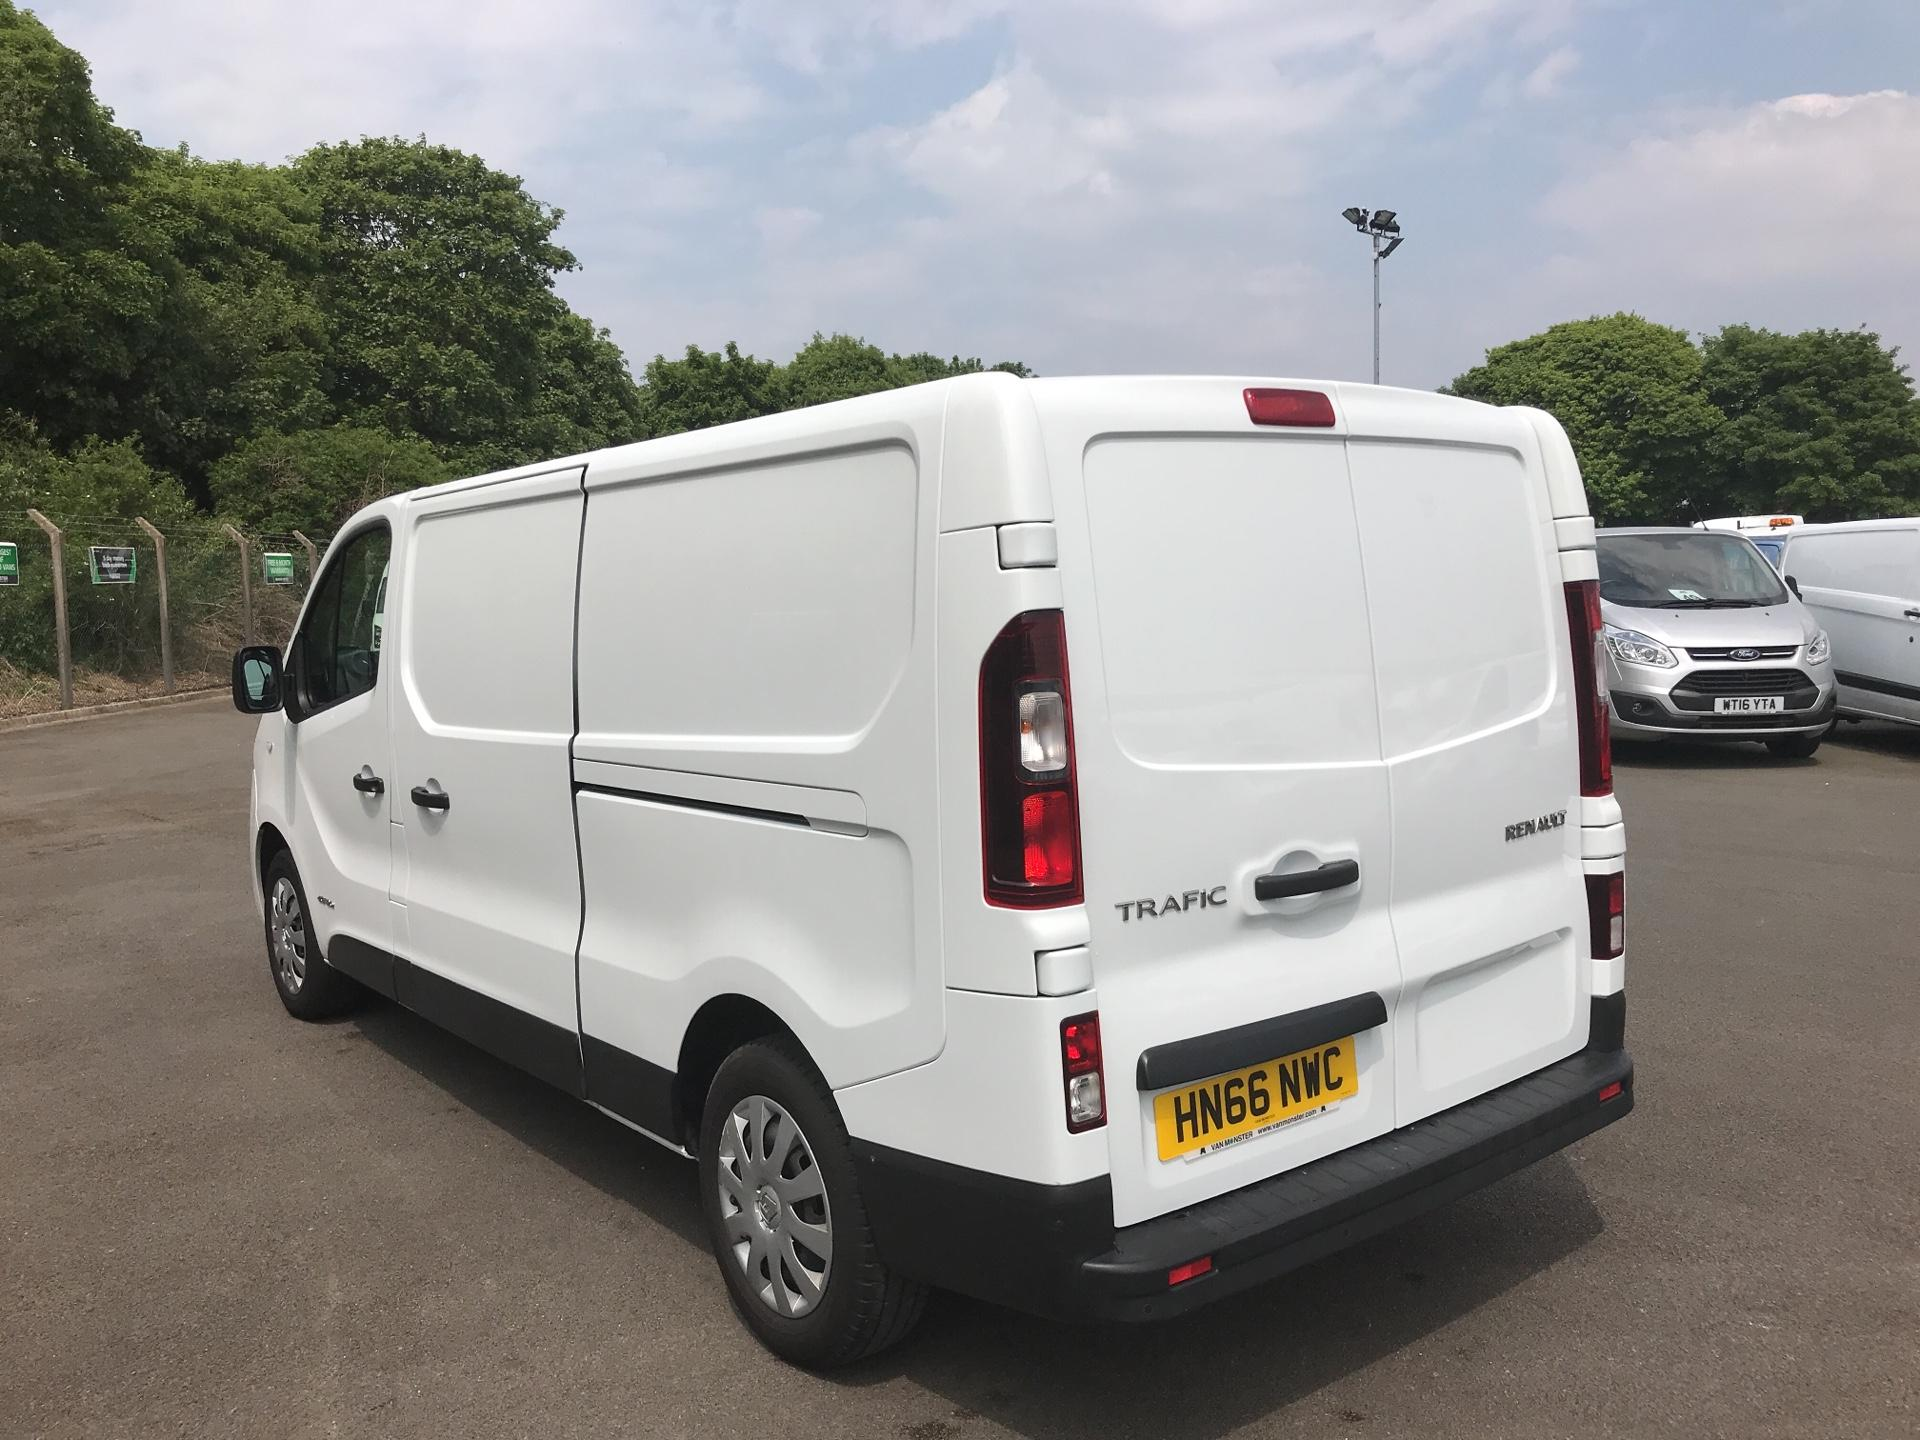 2016 Renault Trafic Ll29 Dci 120 Business+ Van EURO 5 (HN66NWC) Image 5